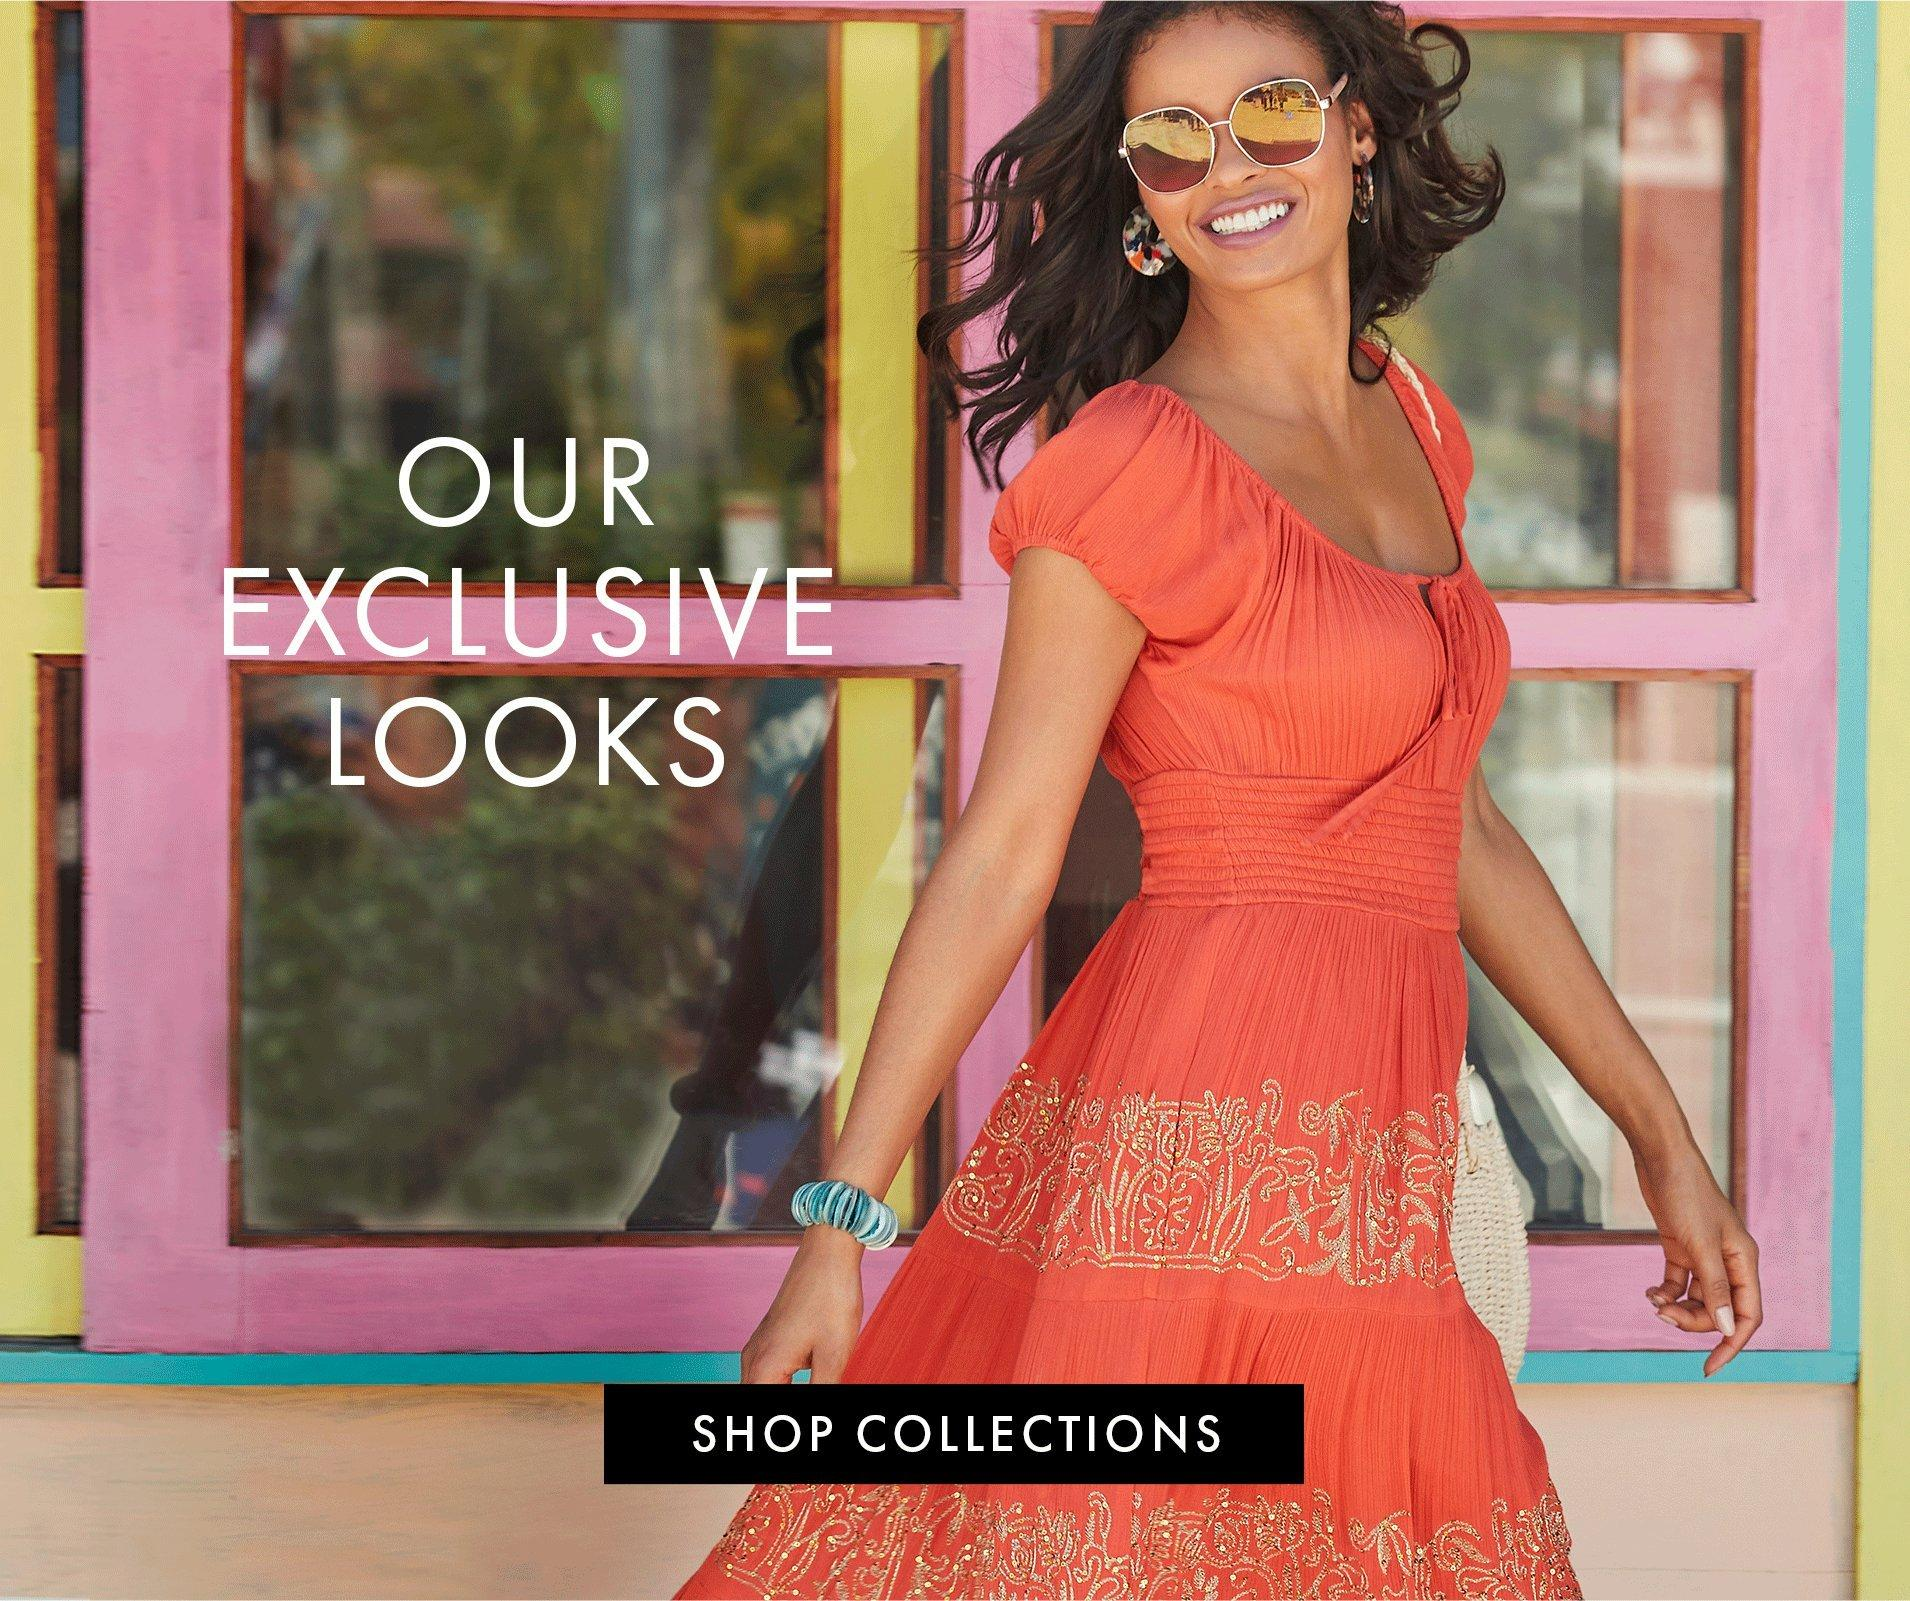 model wearing an orange short sleeve maxi dress with gold embroidery, sunglasses, and multicolored earrings.